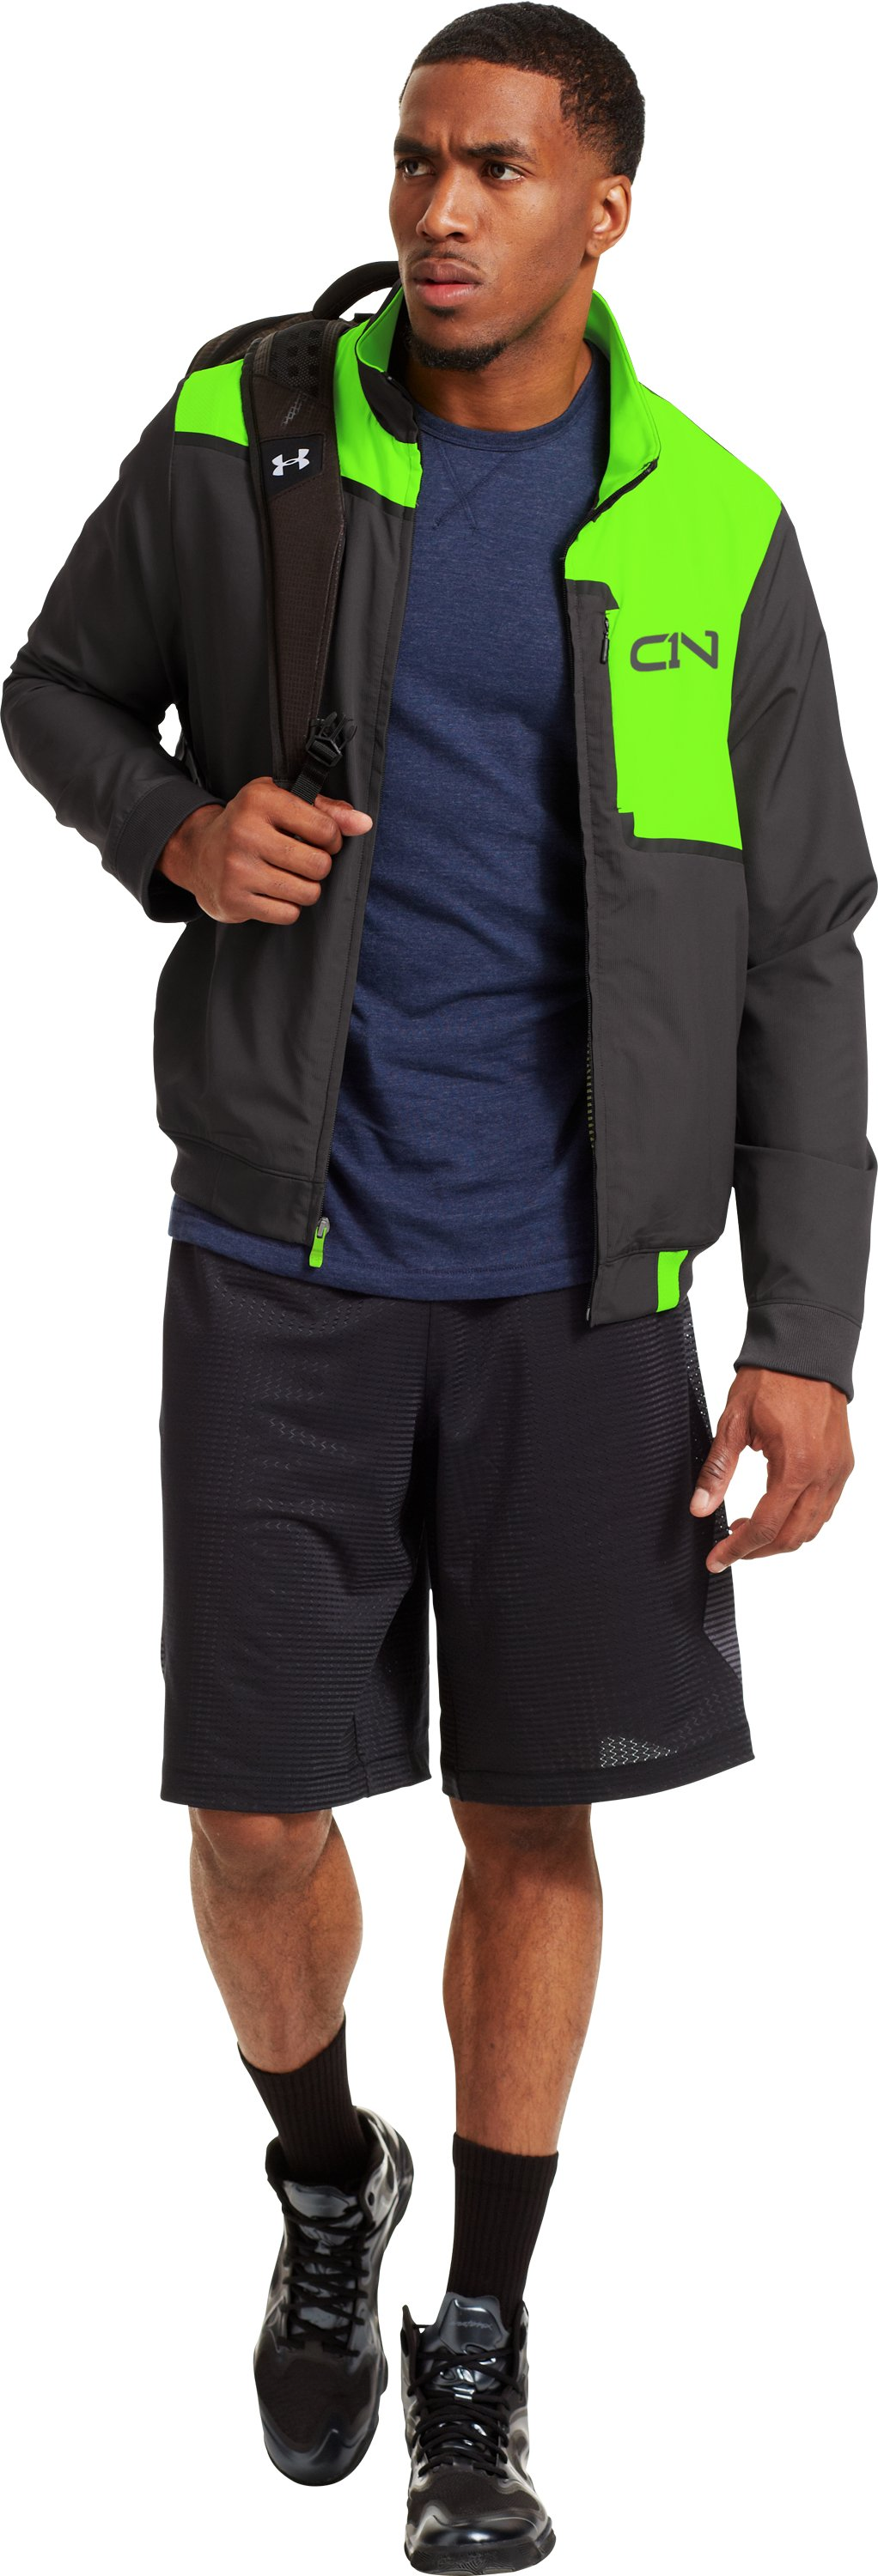 Men's C1N A.K.A. Warm-Up Jacket, HYPER GREEN